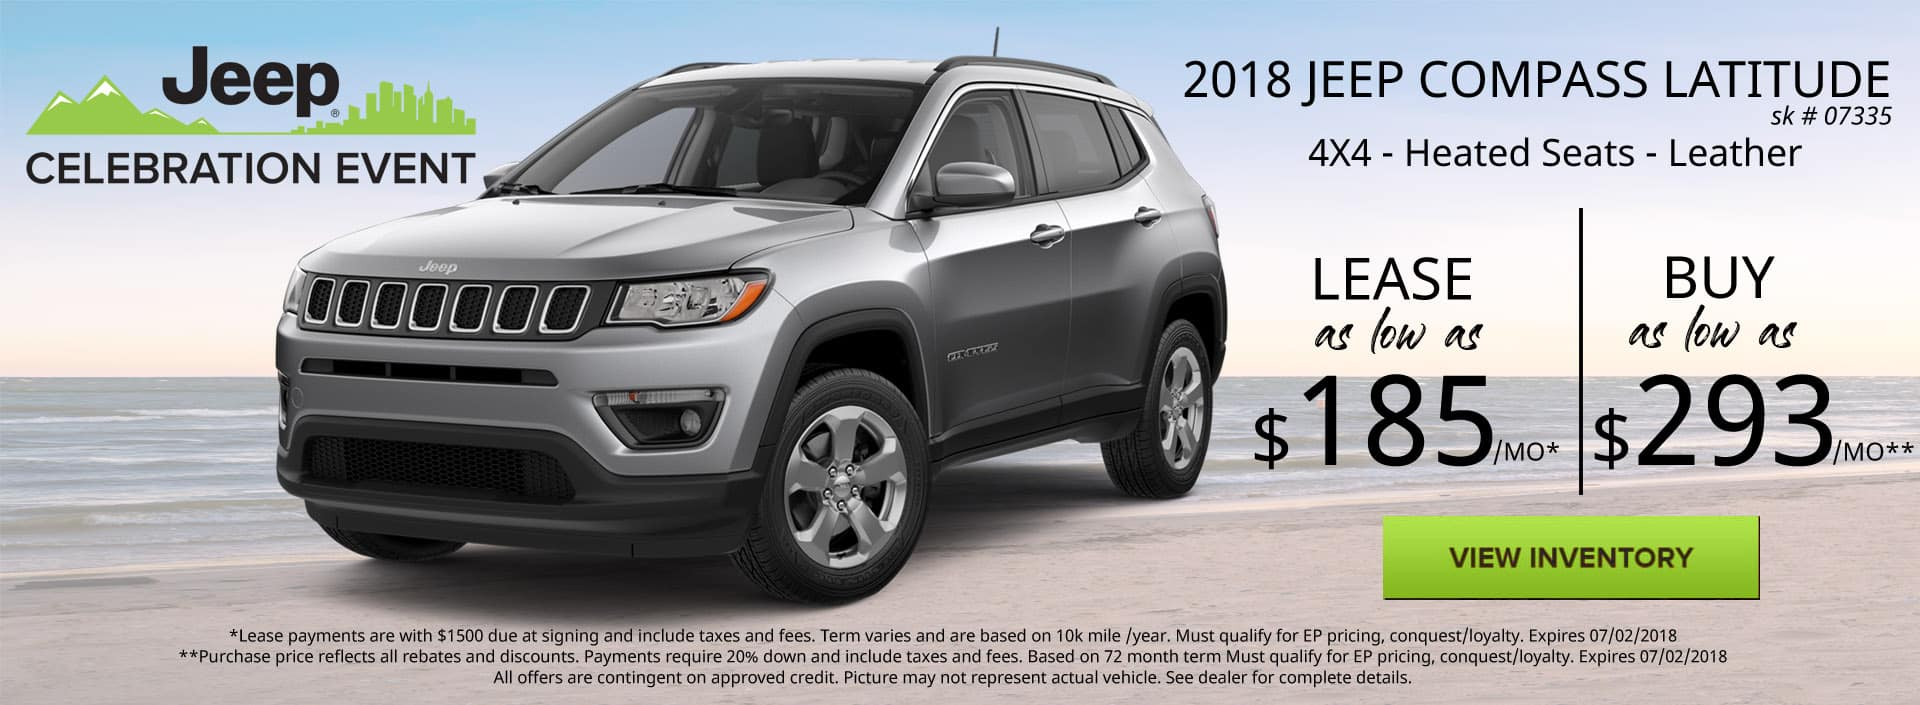 June 2018 Jeep Compass Latitude Special Discount